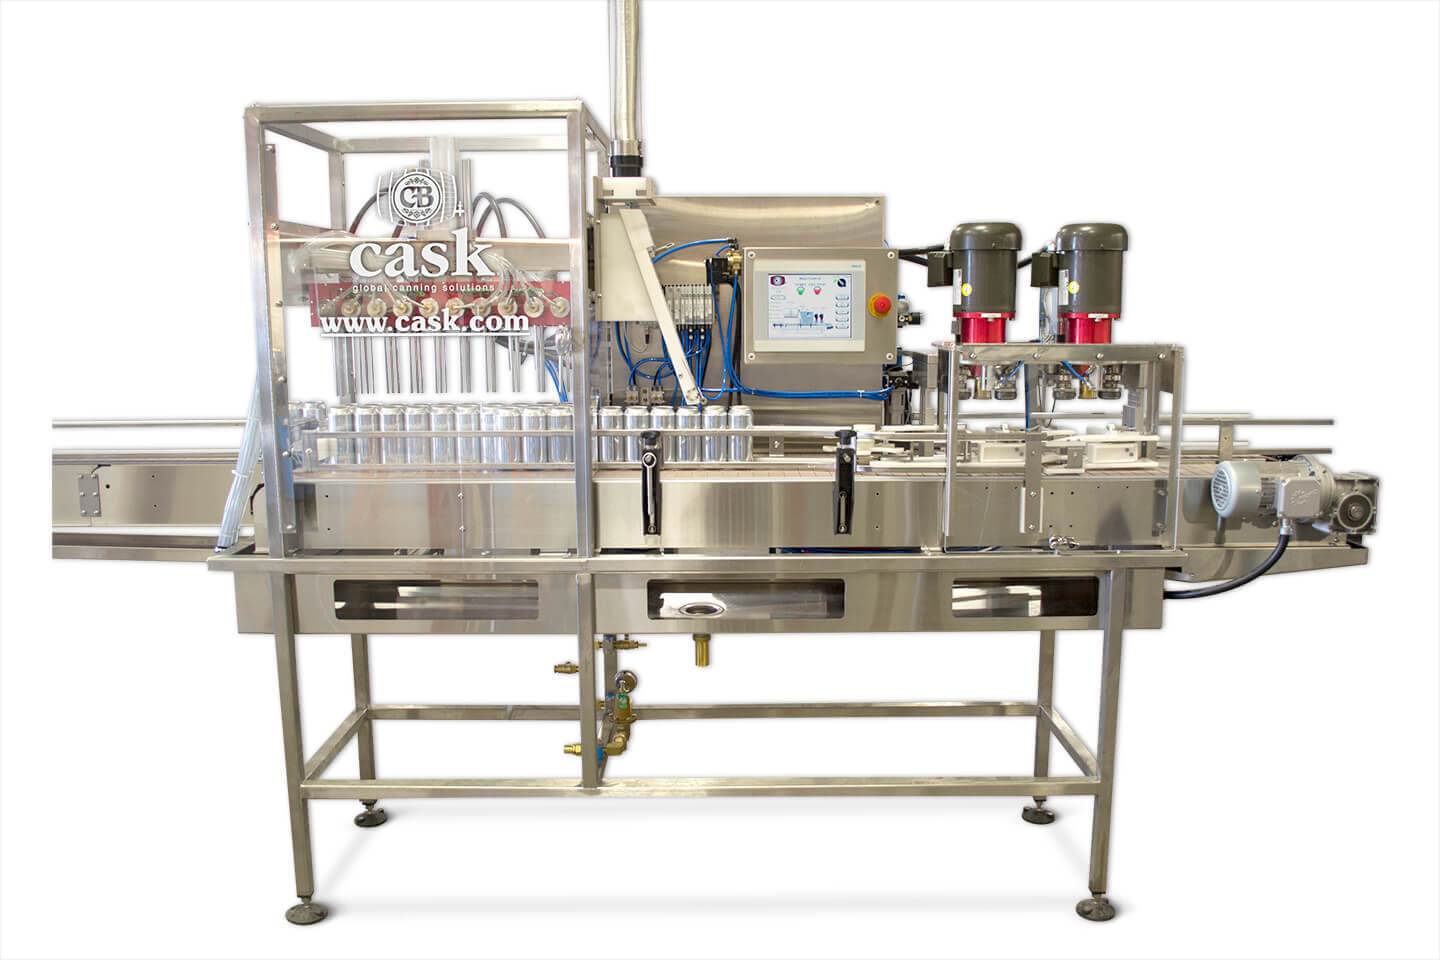 Cask ACX X2 (Automated Canning System X2)